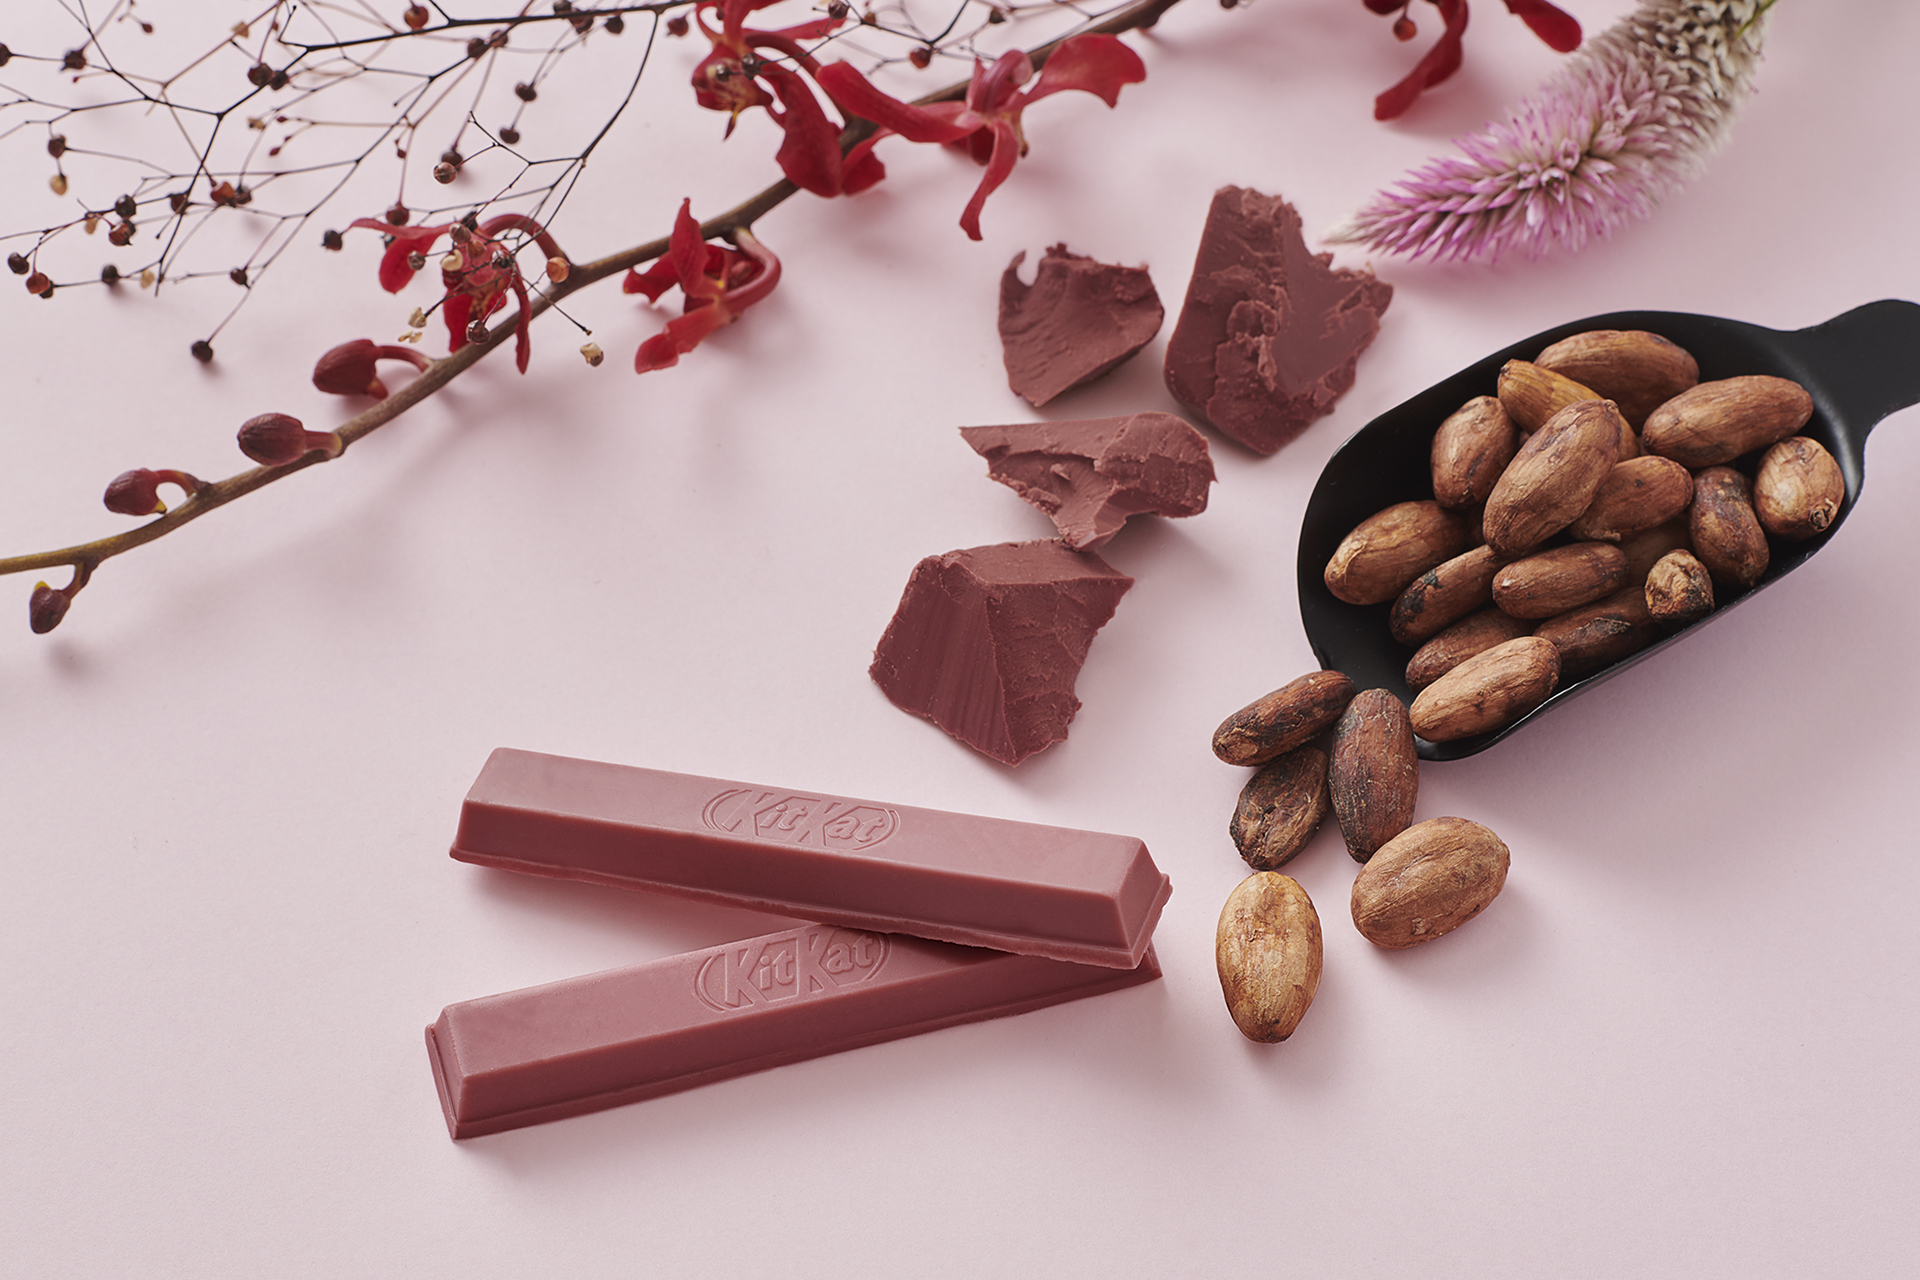 Ruby Chocolate Kitkats Have Landed At Melbourne Central